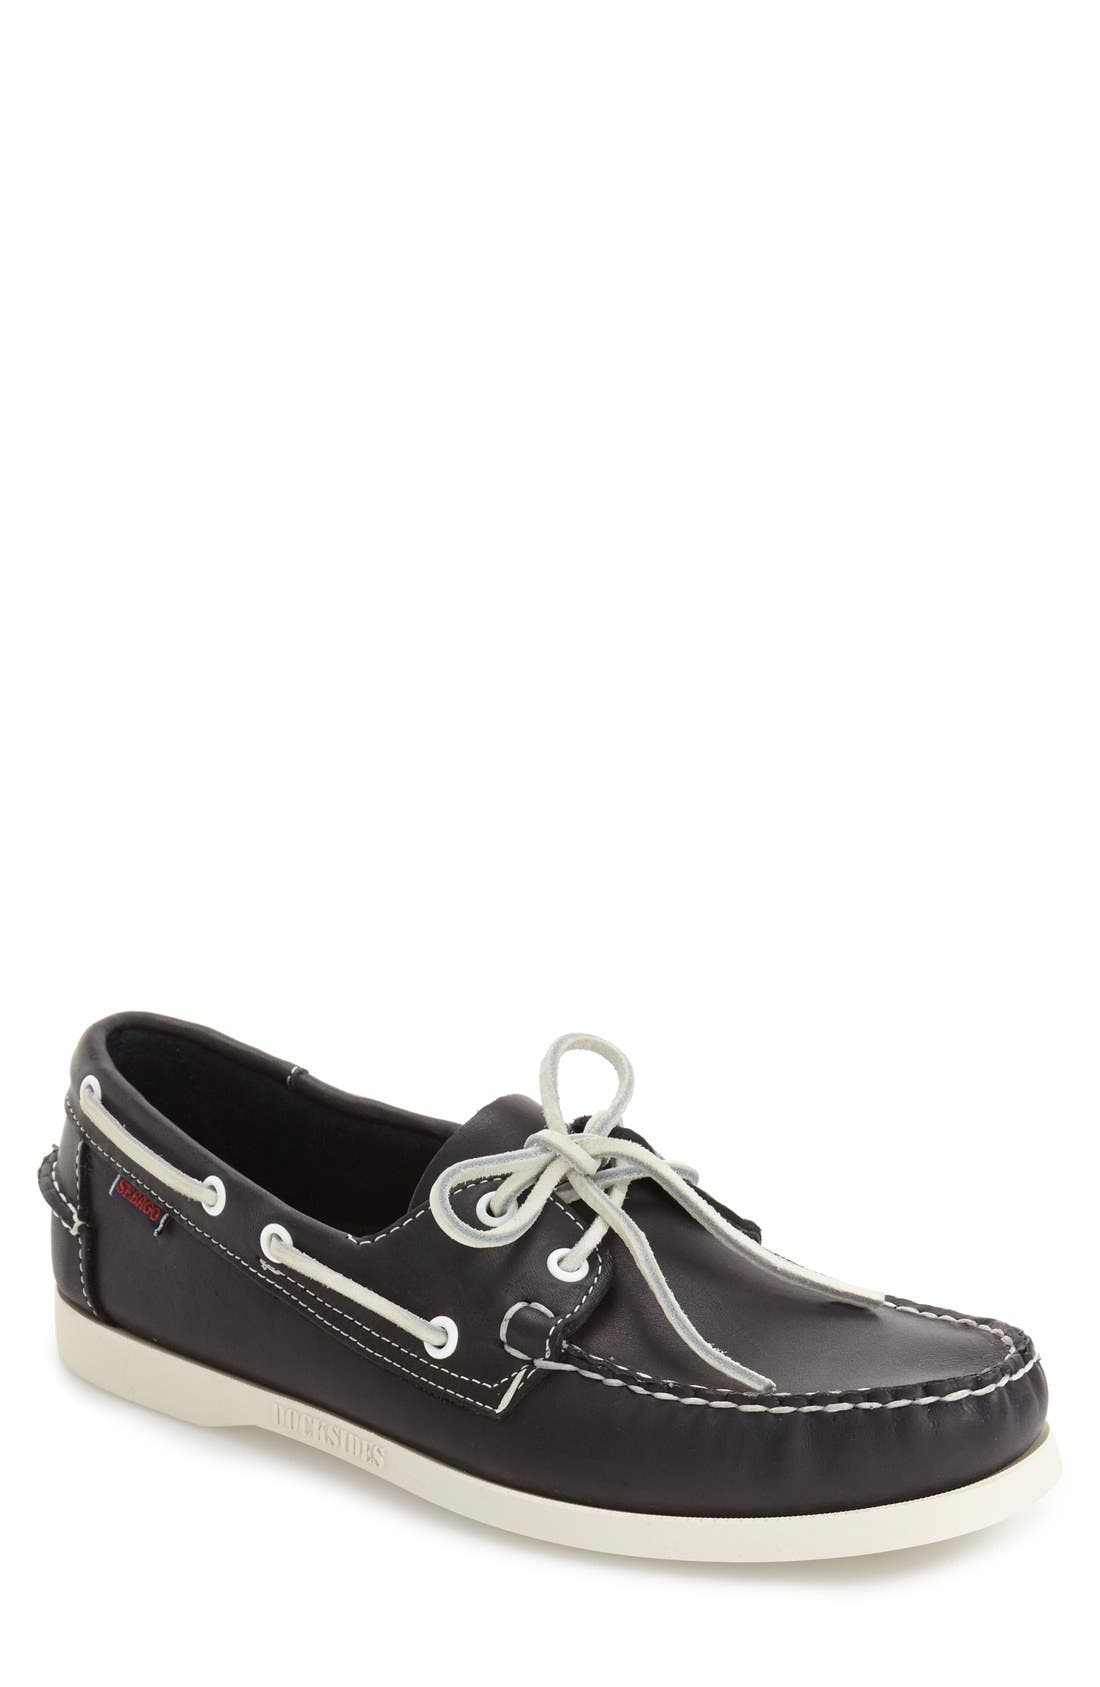 Alternate Image 1 Selected - Sebago 'Docksides®' Boat Shoe